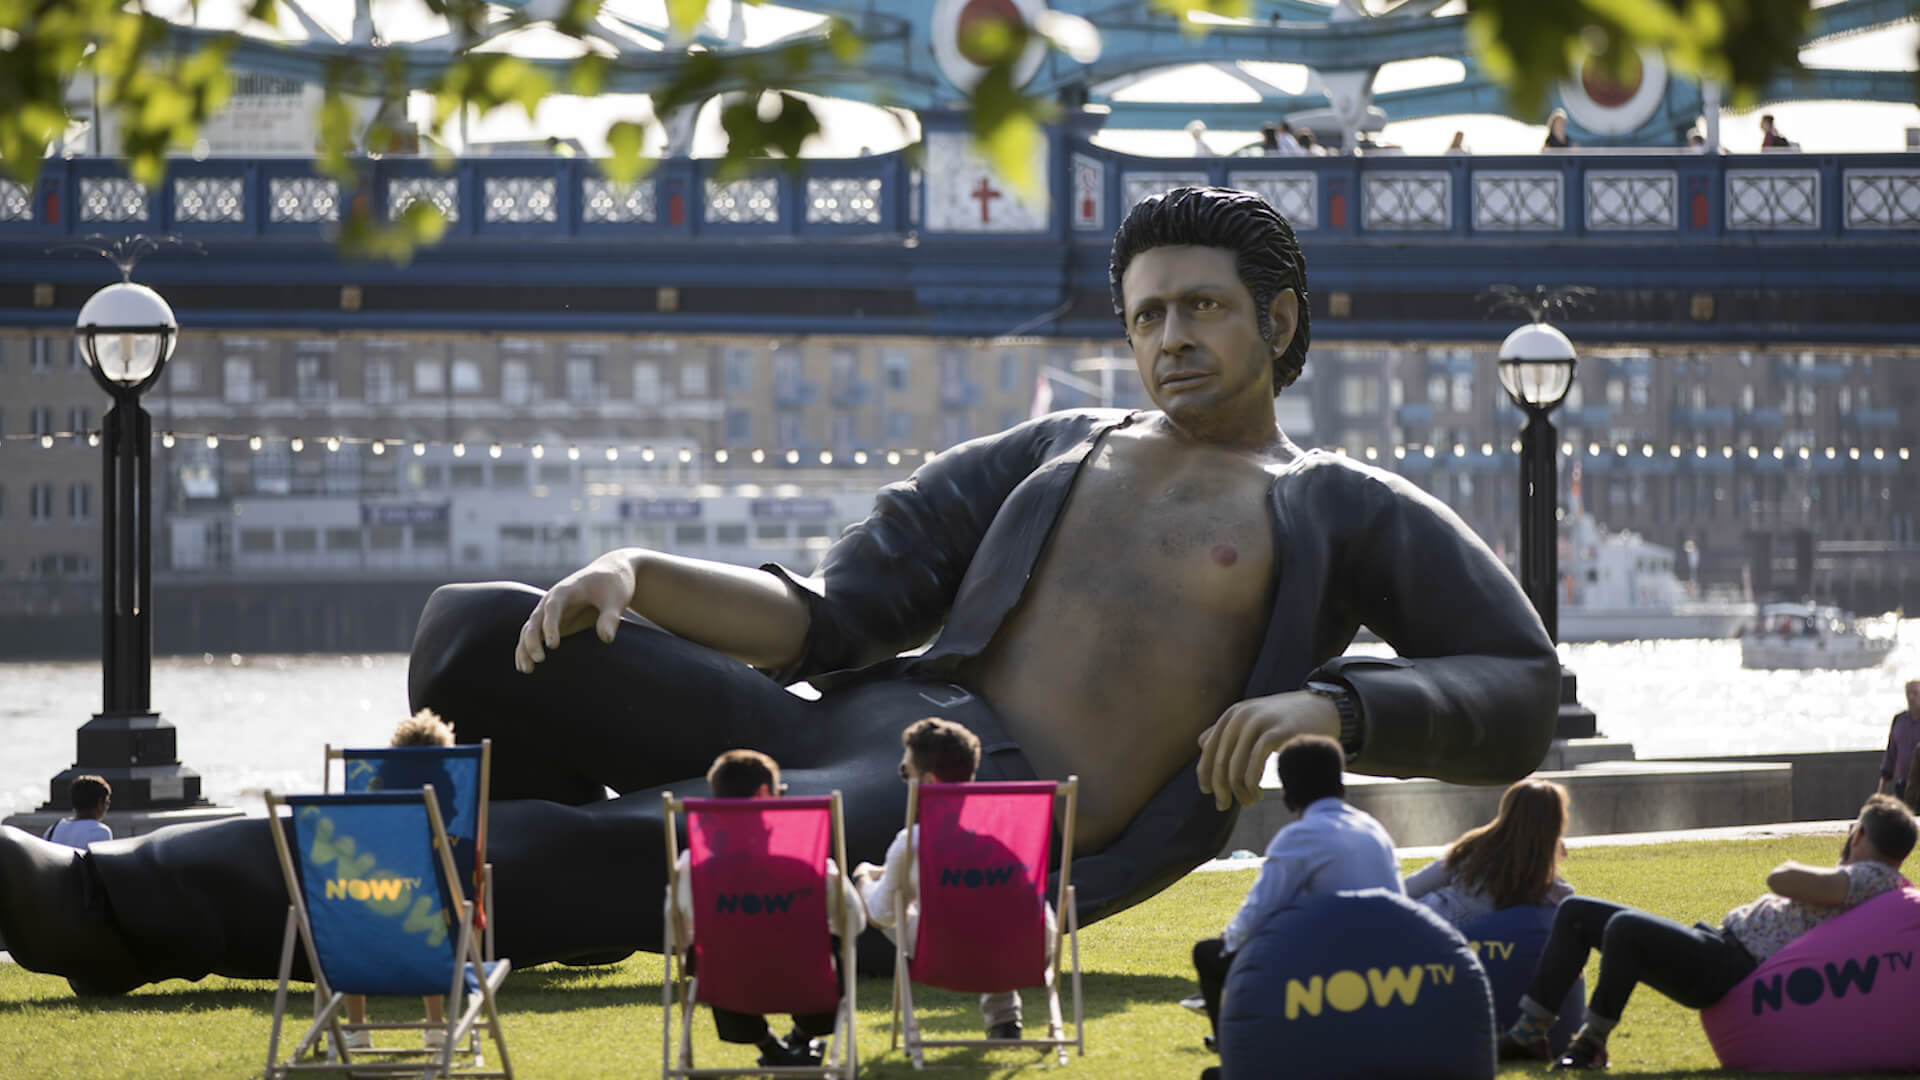 Jurassic Park: 25-Foot Statue of Jeff Goldblum Appears in London